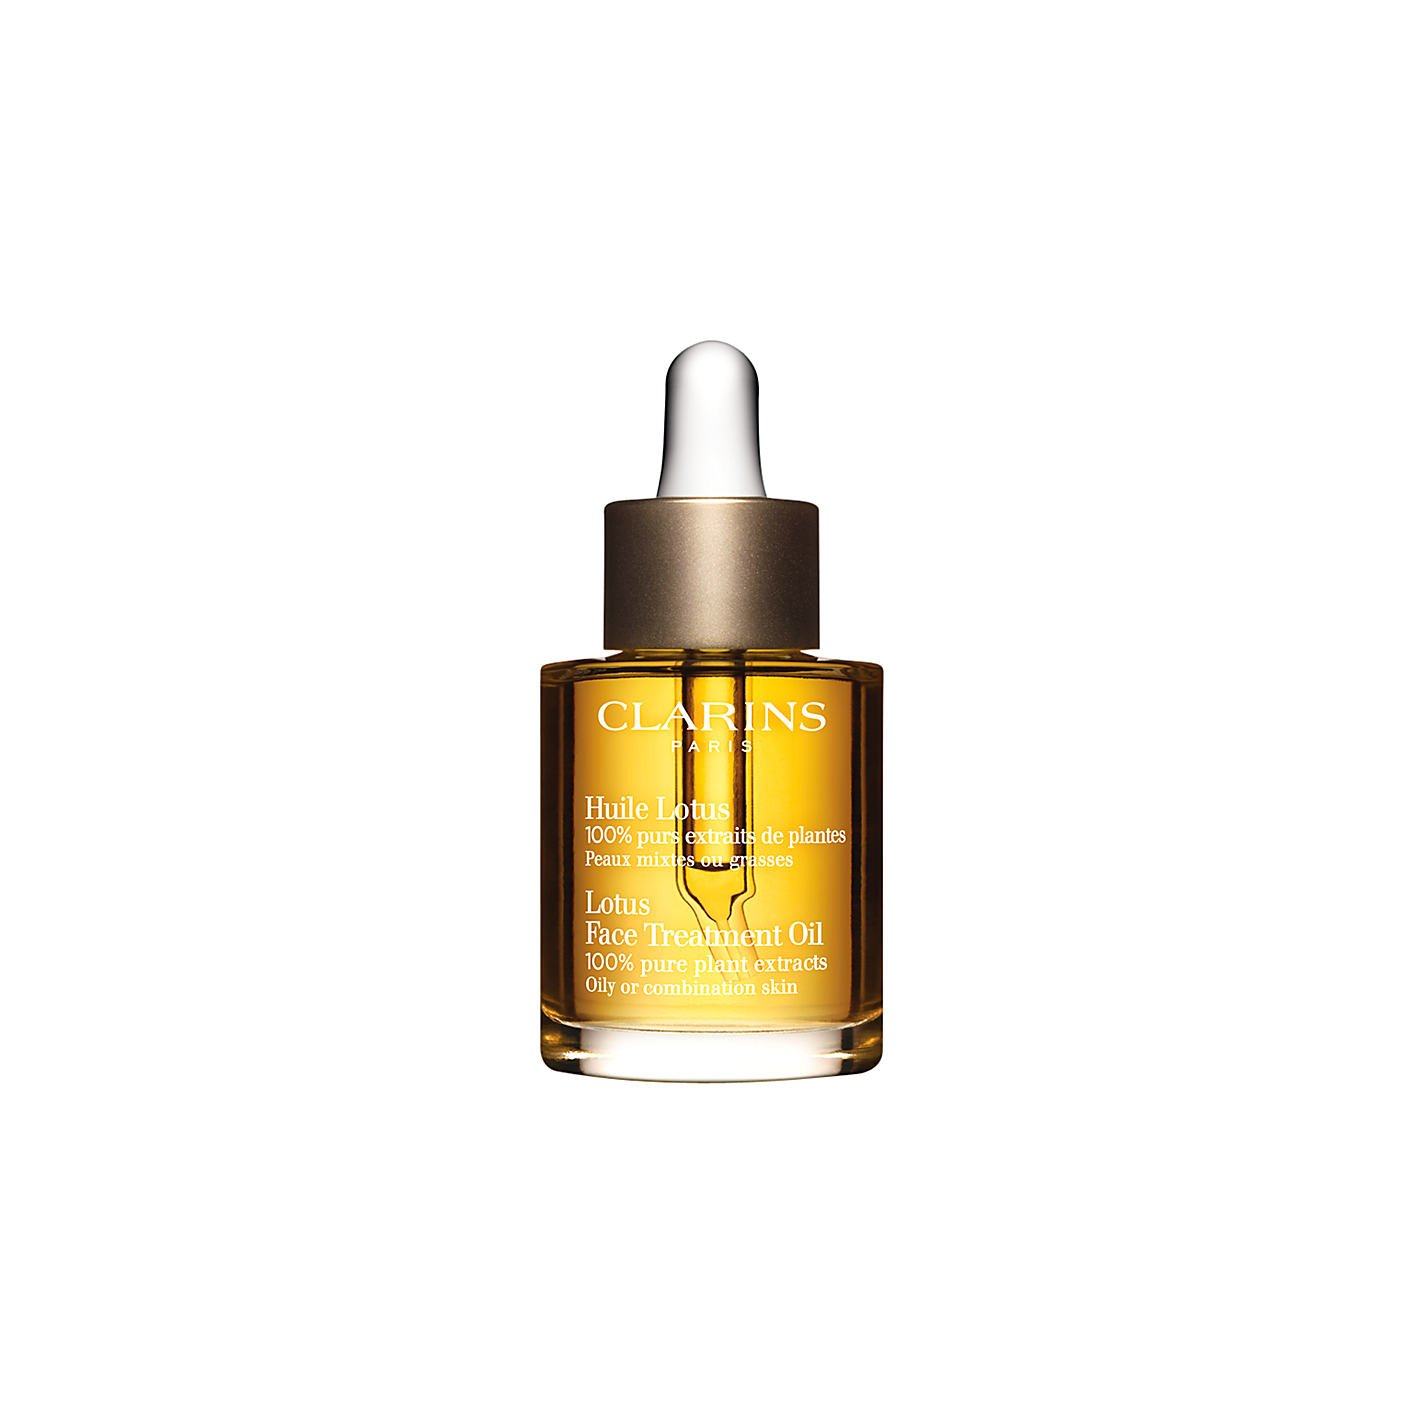 Clarins - Lotus Face Oil 30 ml /Skin Care